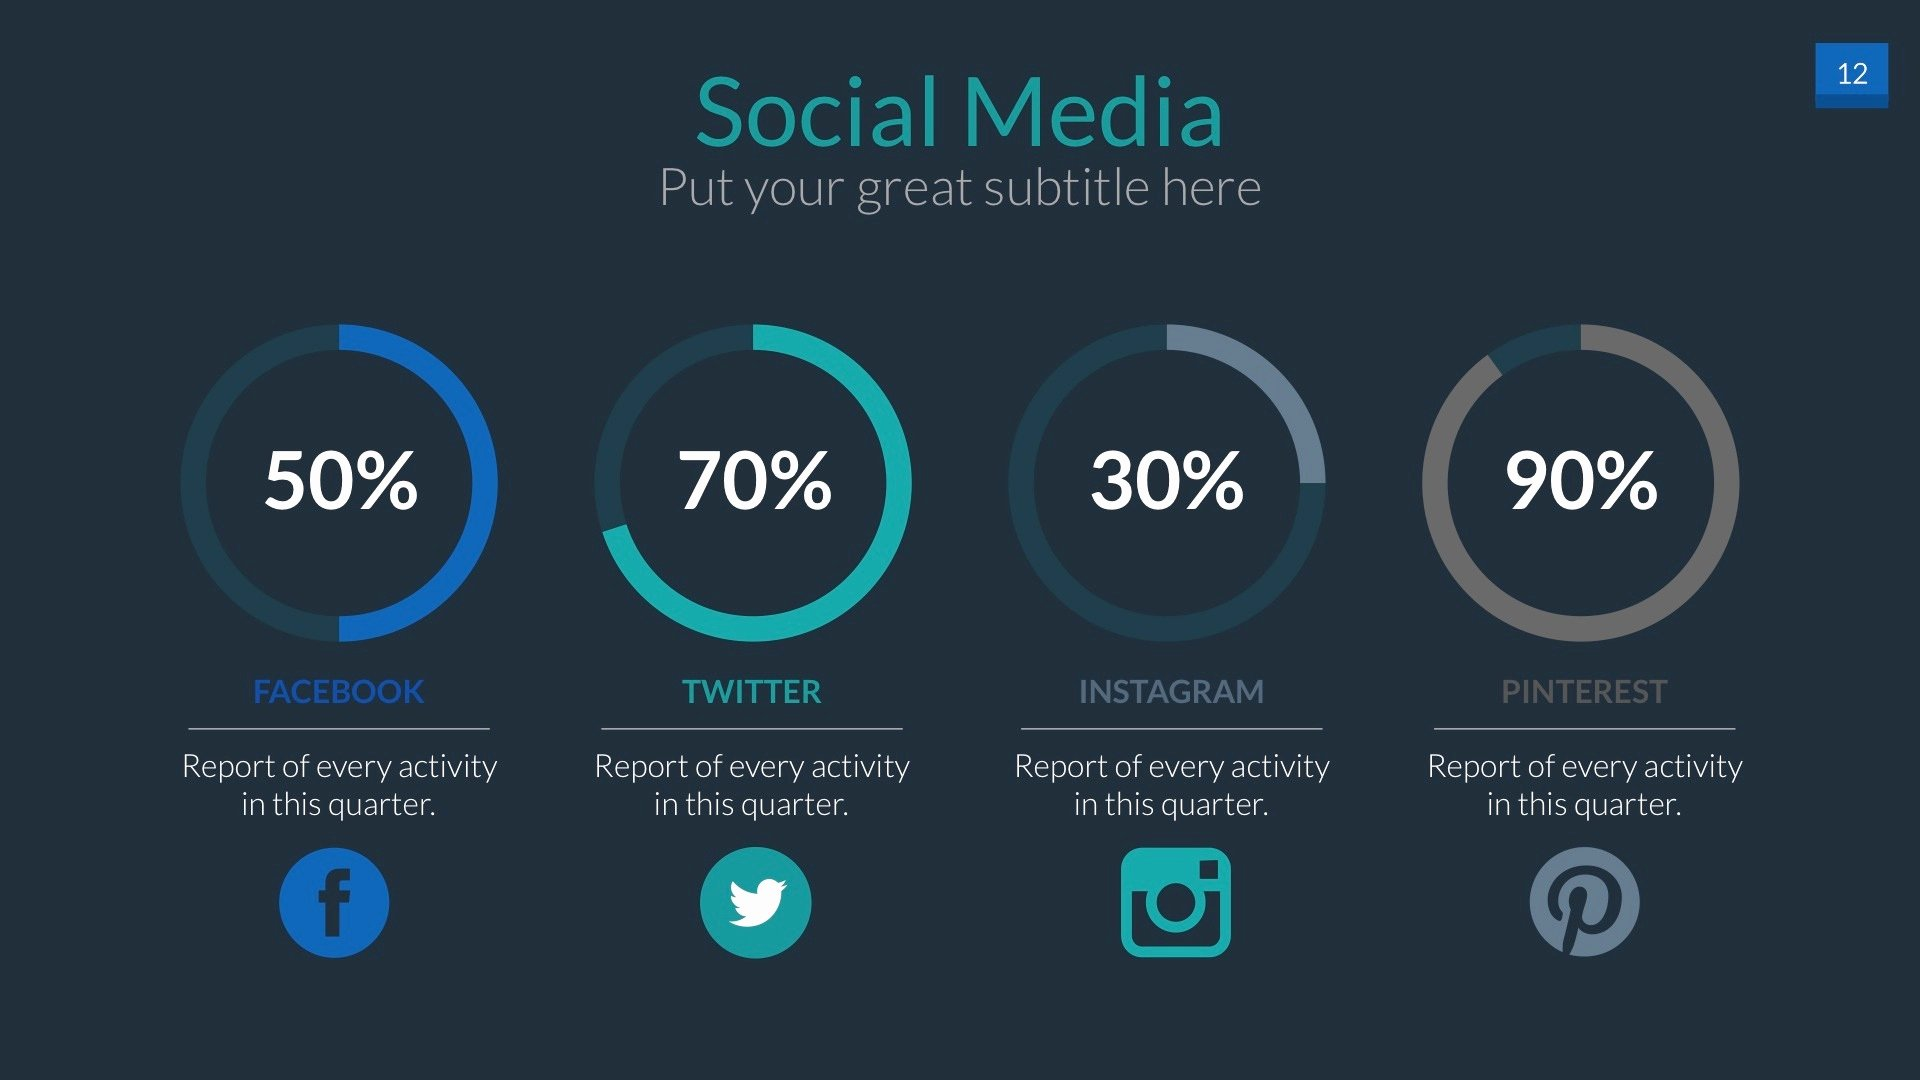 Social Media Ppt Template New social Media Powerpoint Presentation Template by